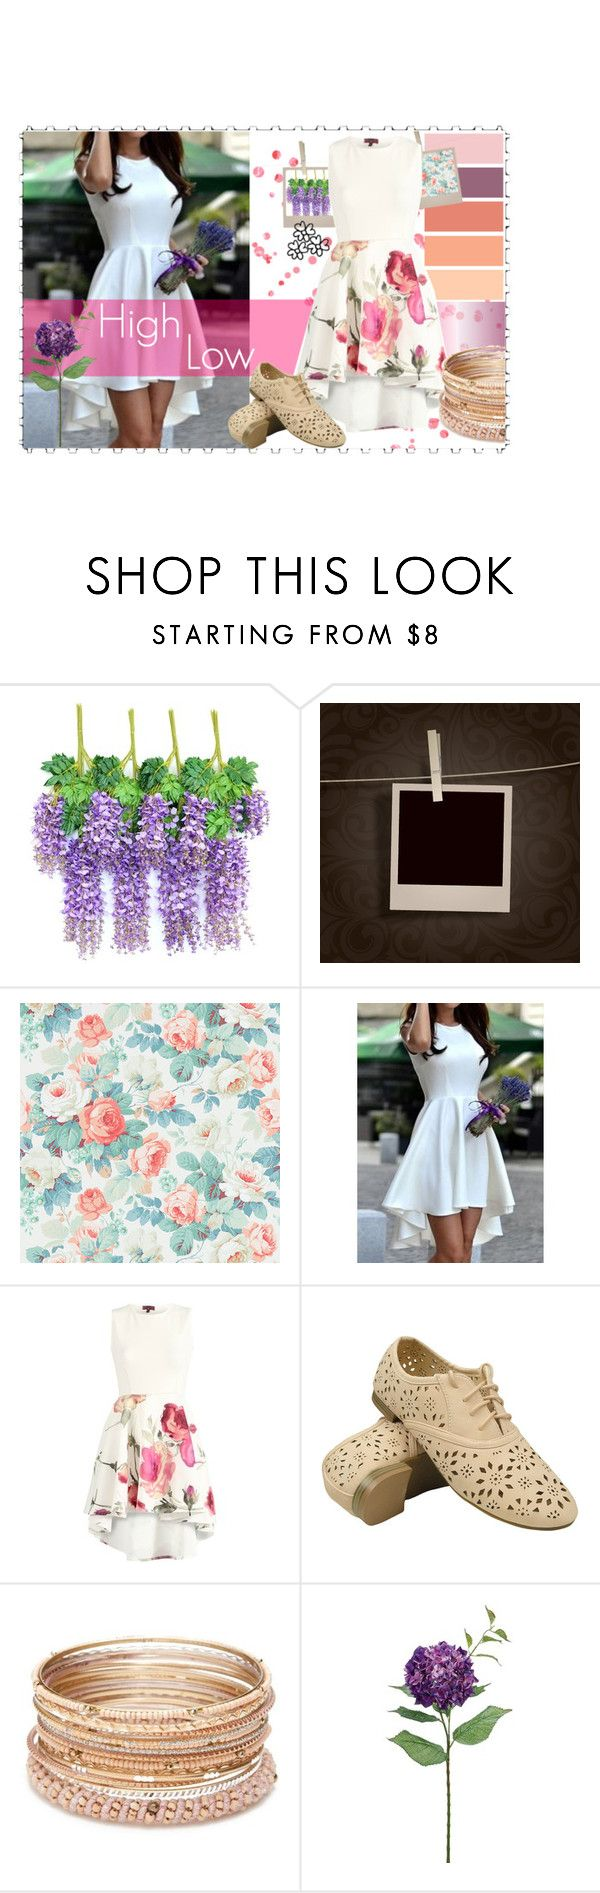 """""""The Wedding Guest Edit- High Low Dress"""" by beatzbeau ❤ liked on Polyvore featuring SANDERSON, Red Camel, WeddingGuest, floral and high"""